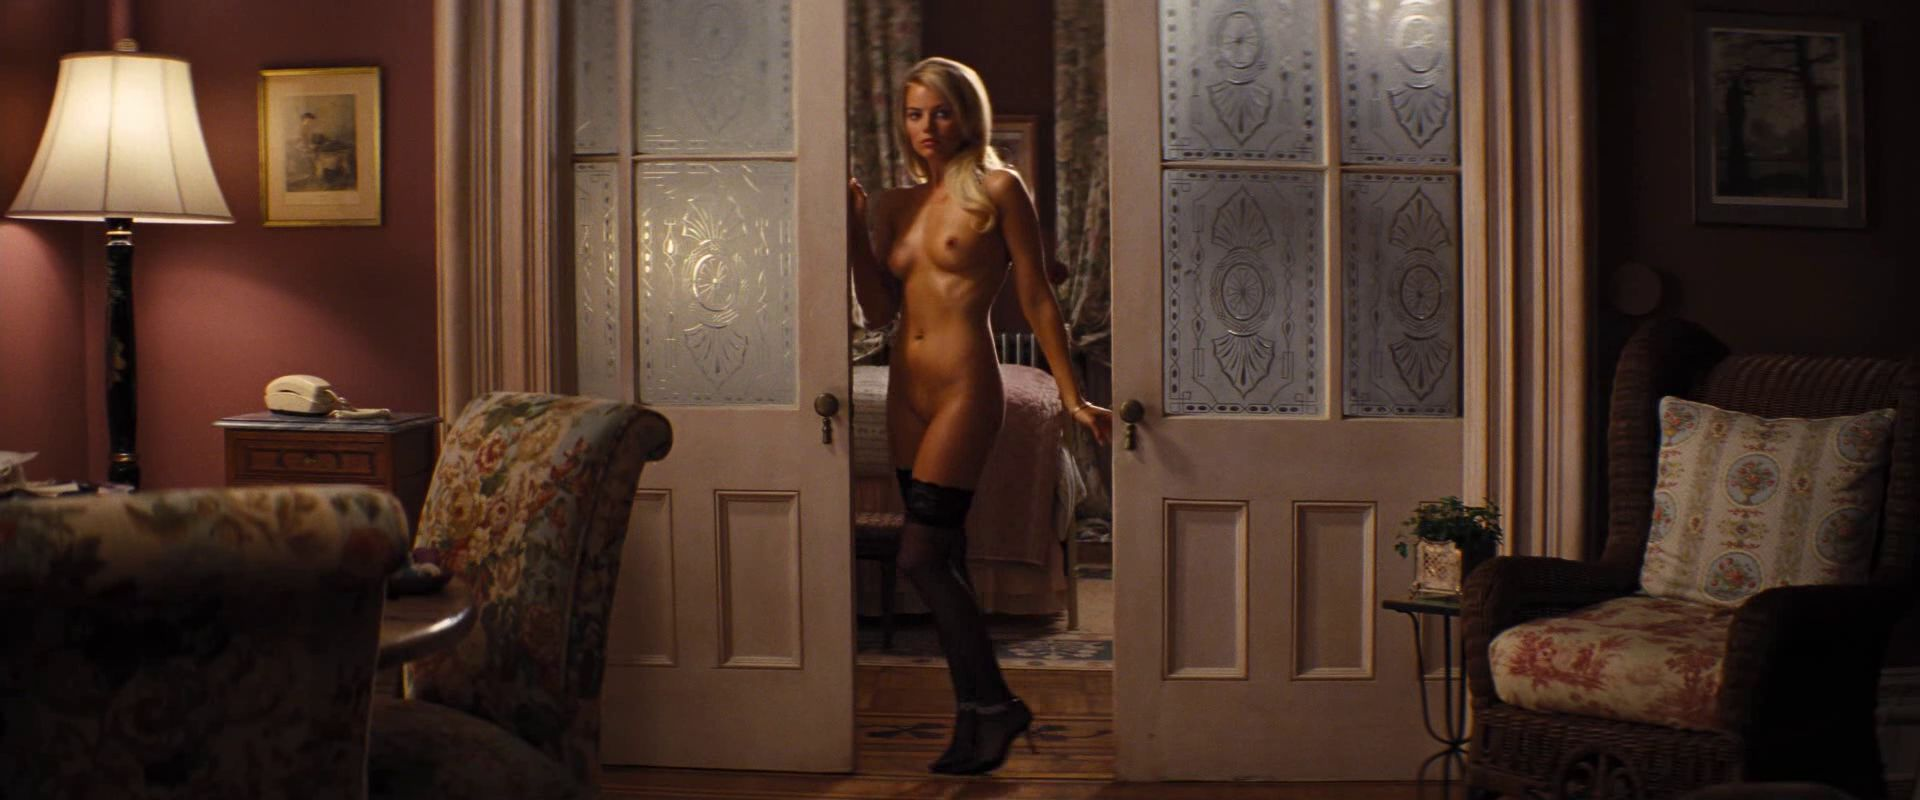 margot robbie nude wolf of wall street